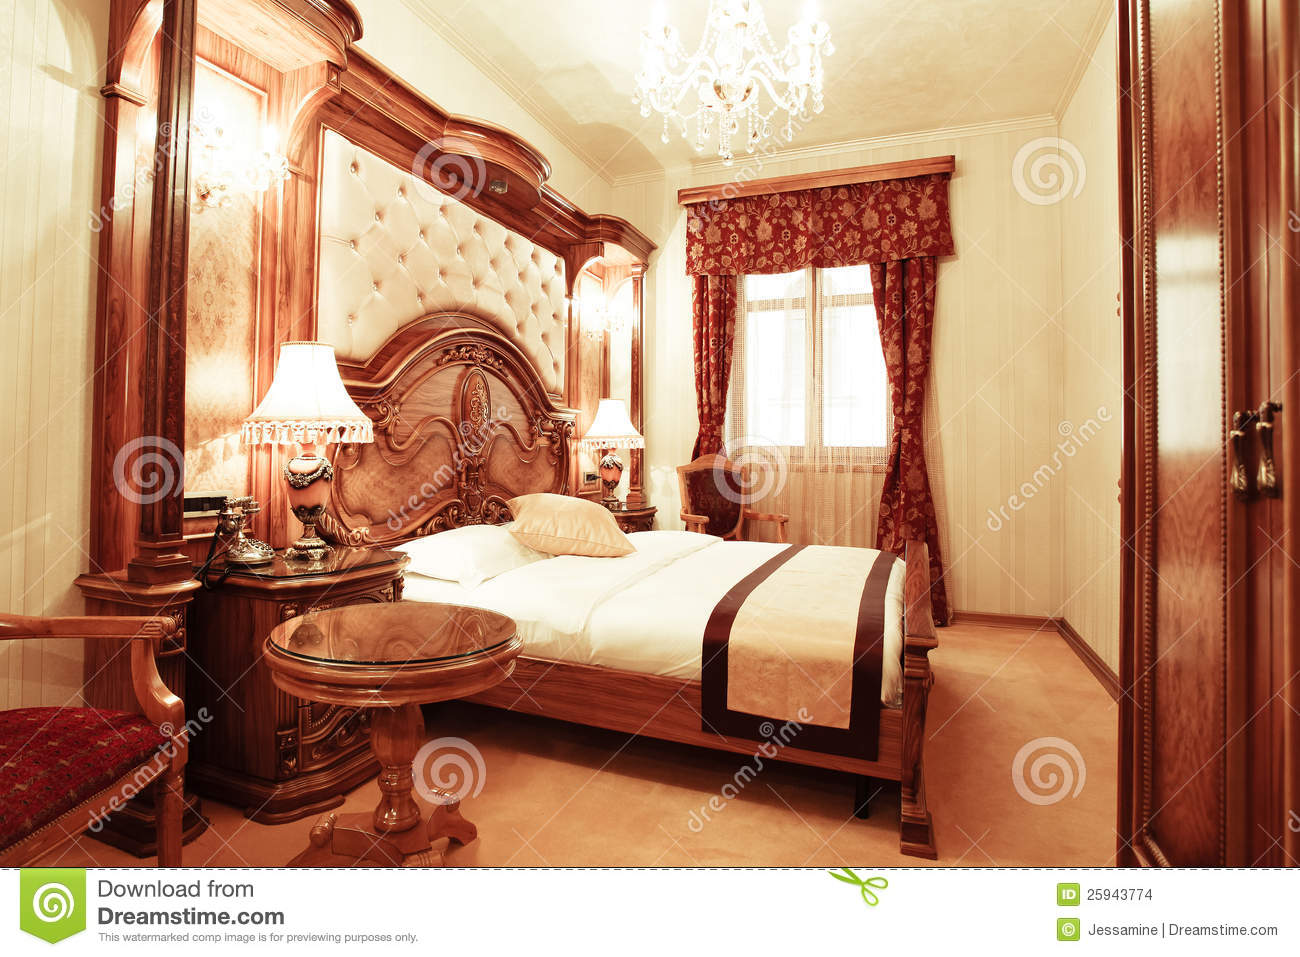 chambre coucher de luxe photo stock image du h tel 25943774. Black Bedroom Furniture Sets. Home Design Ideas